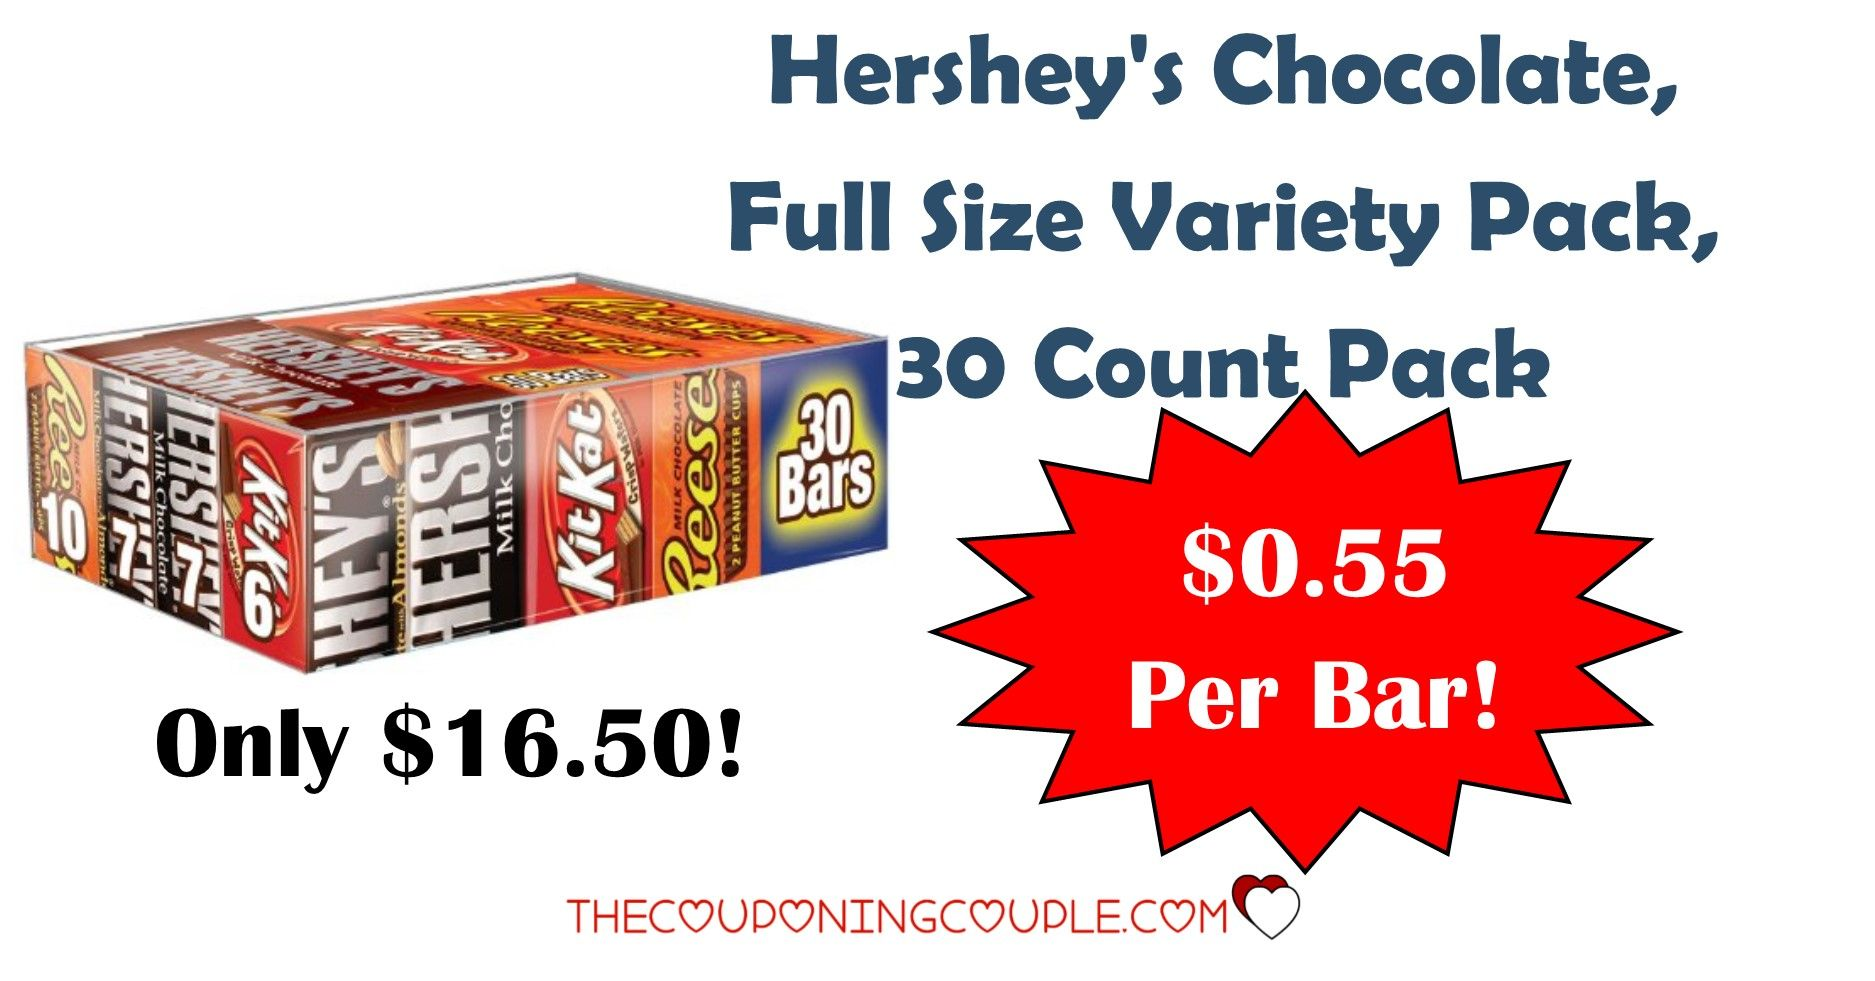 OH BOY! Check this out! Get a Hersheys Chocolate Bars Variety Pack 30 count for only $16.50! That is ONLY $0.55 per bar! Stock up for treats or as Valentine's Day gifts!  Click the link below to get all of the details ► http://www.thecouponingcouple.com/hersheys-chocolate-variety-pack-30-count-only-0-55-per-bar/ #Coupons #Couponing #CouponCommunity  Visit us at http://www.thecouponingcouple.com for more great posts!